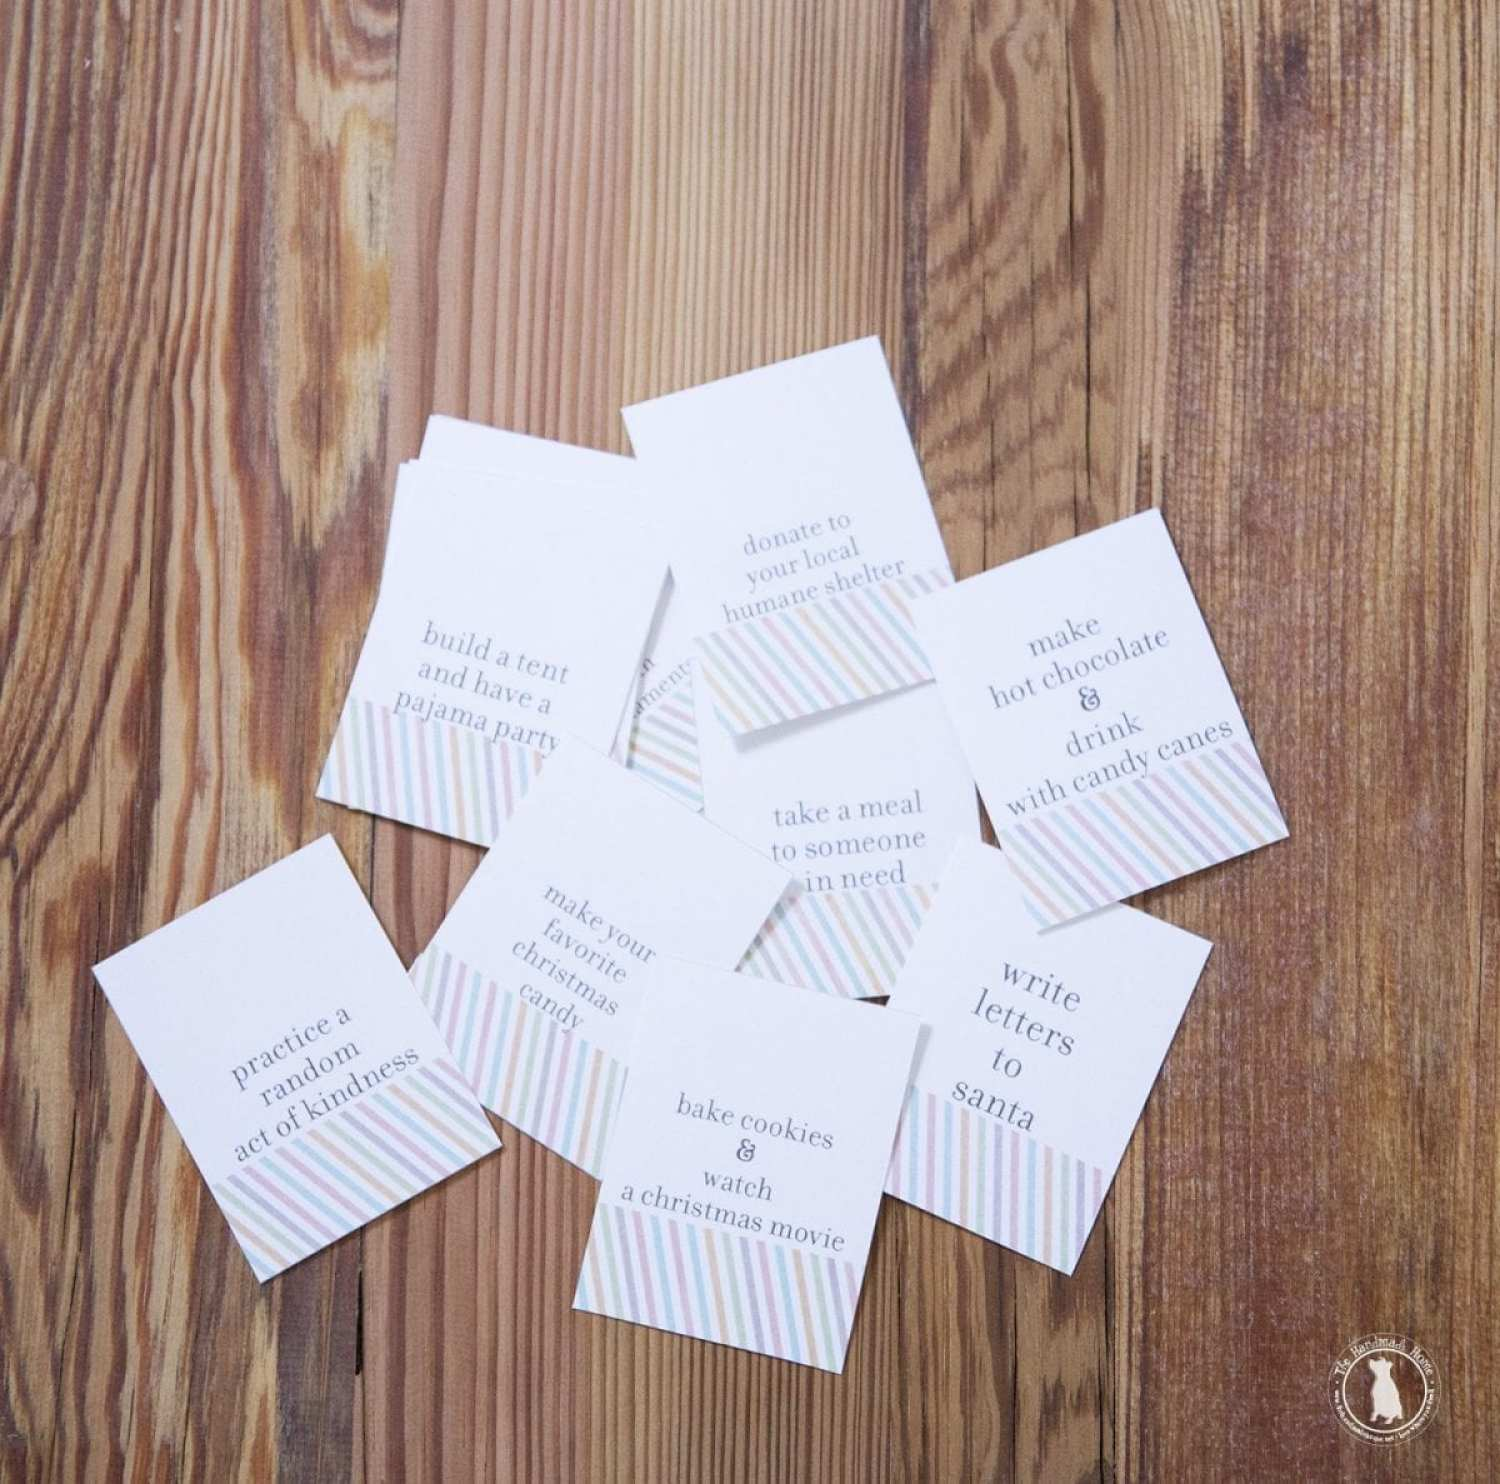 activity_cards